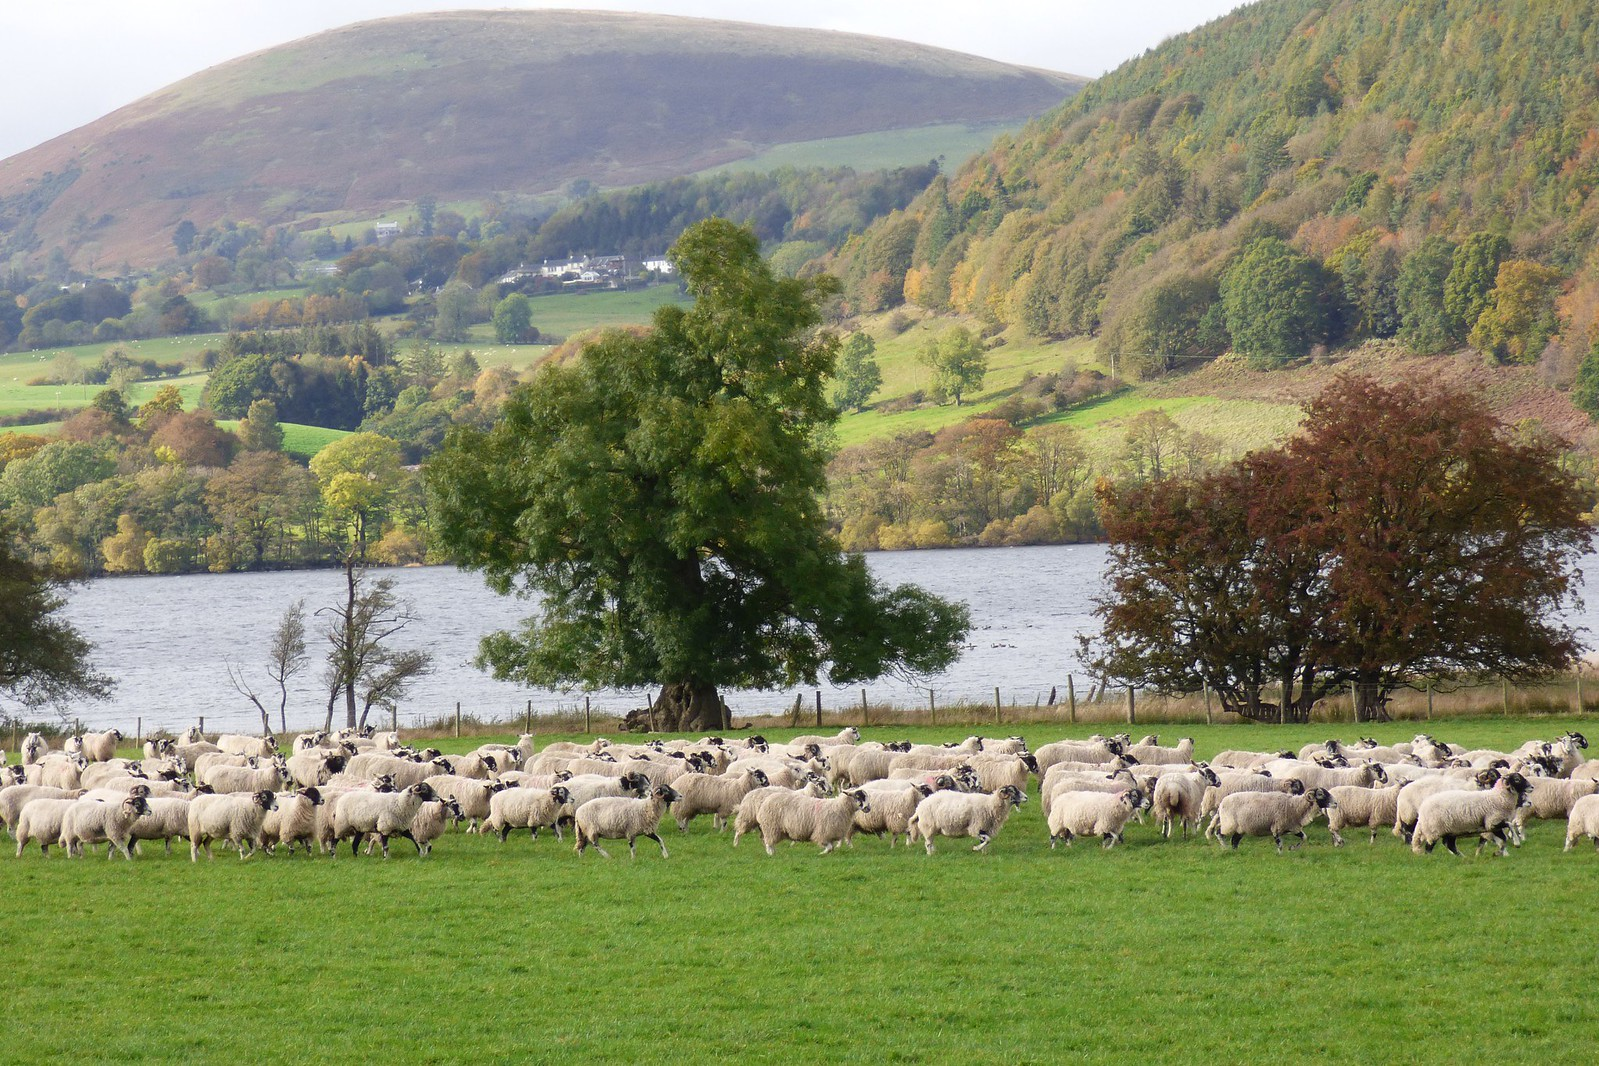 Sheep gathering, Ullswater, Cumbria